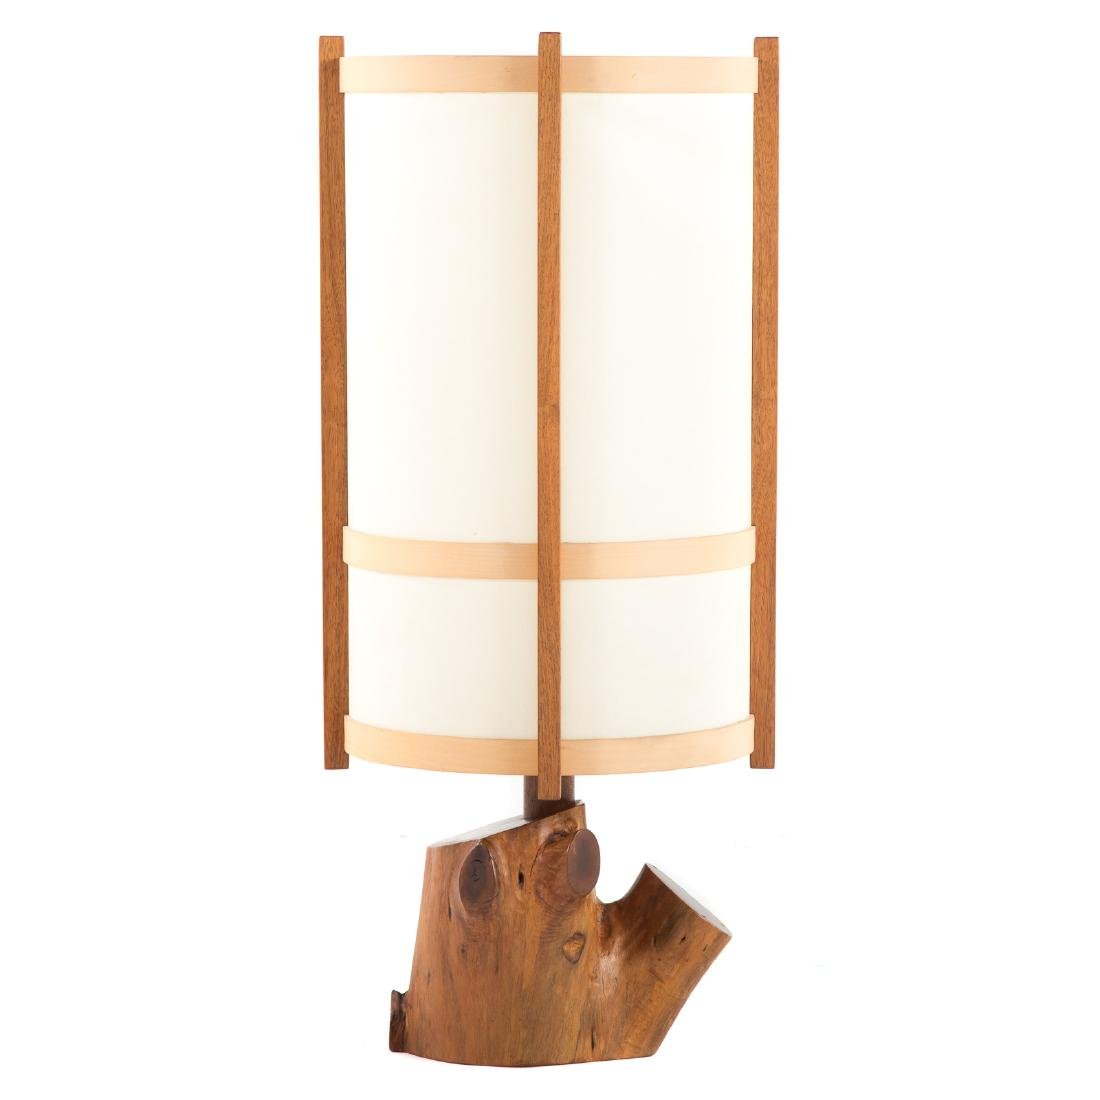 George Nakashima Table Lamp - 3